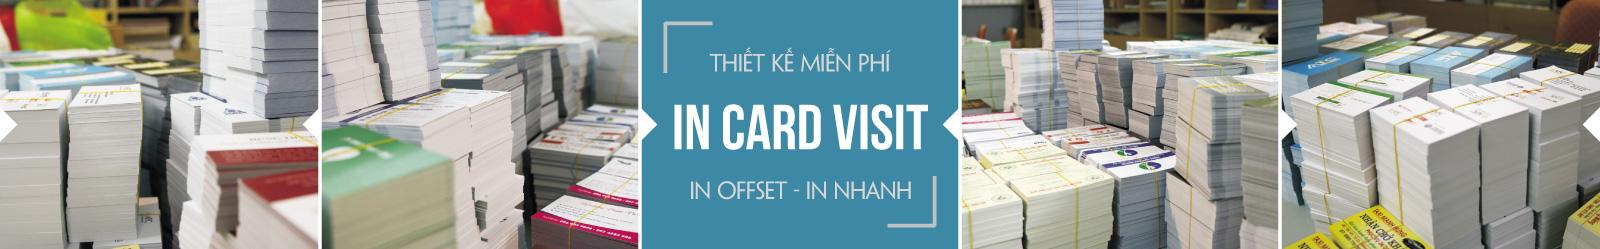 In card visit